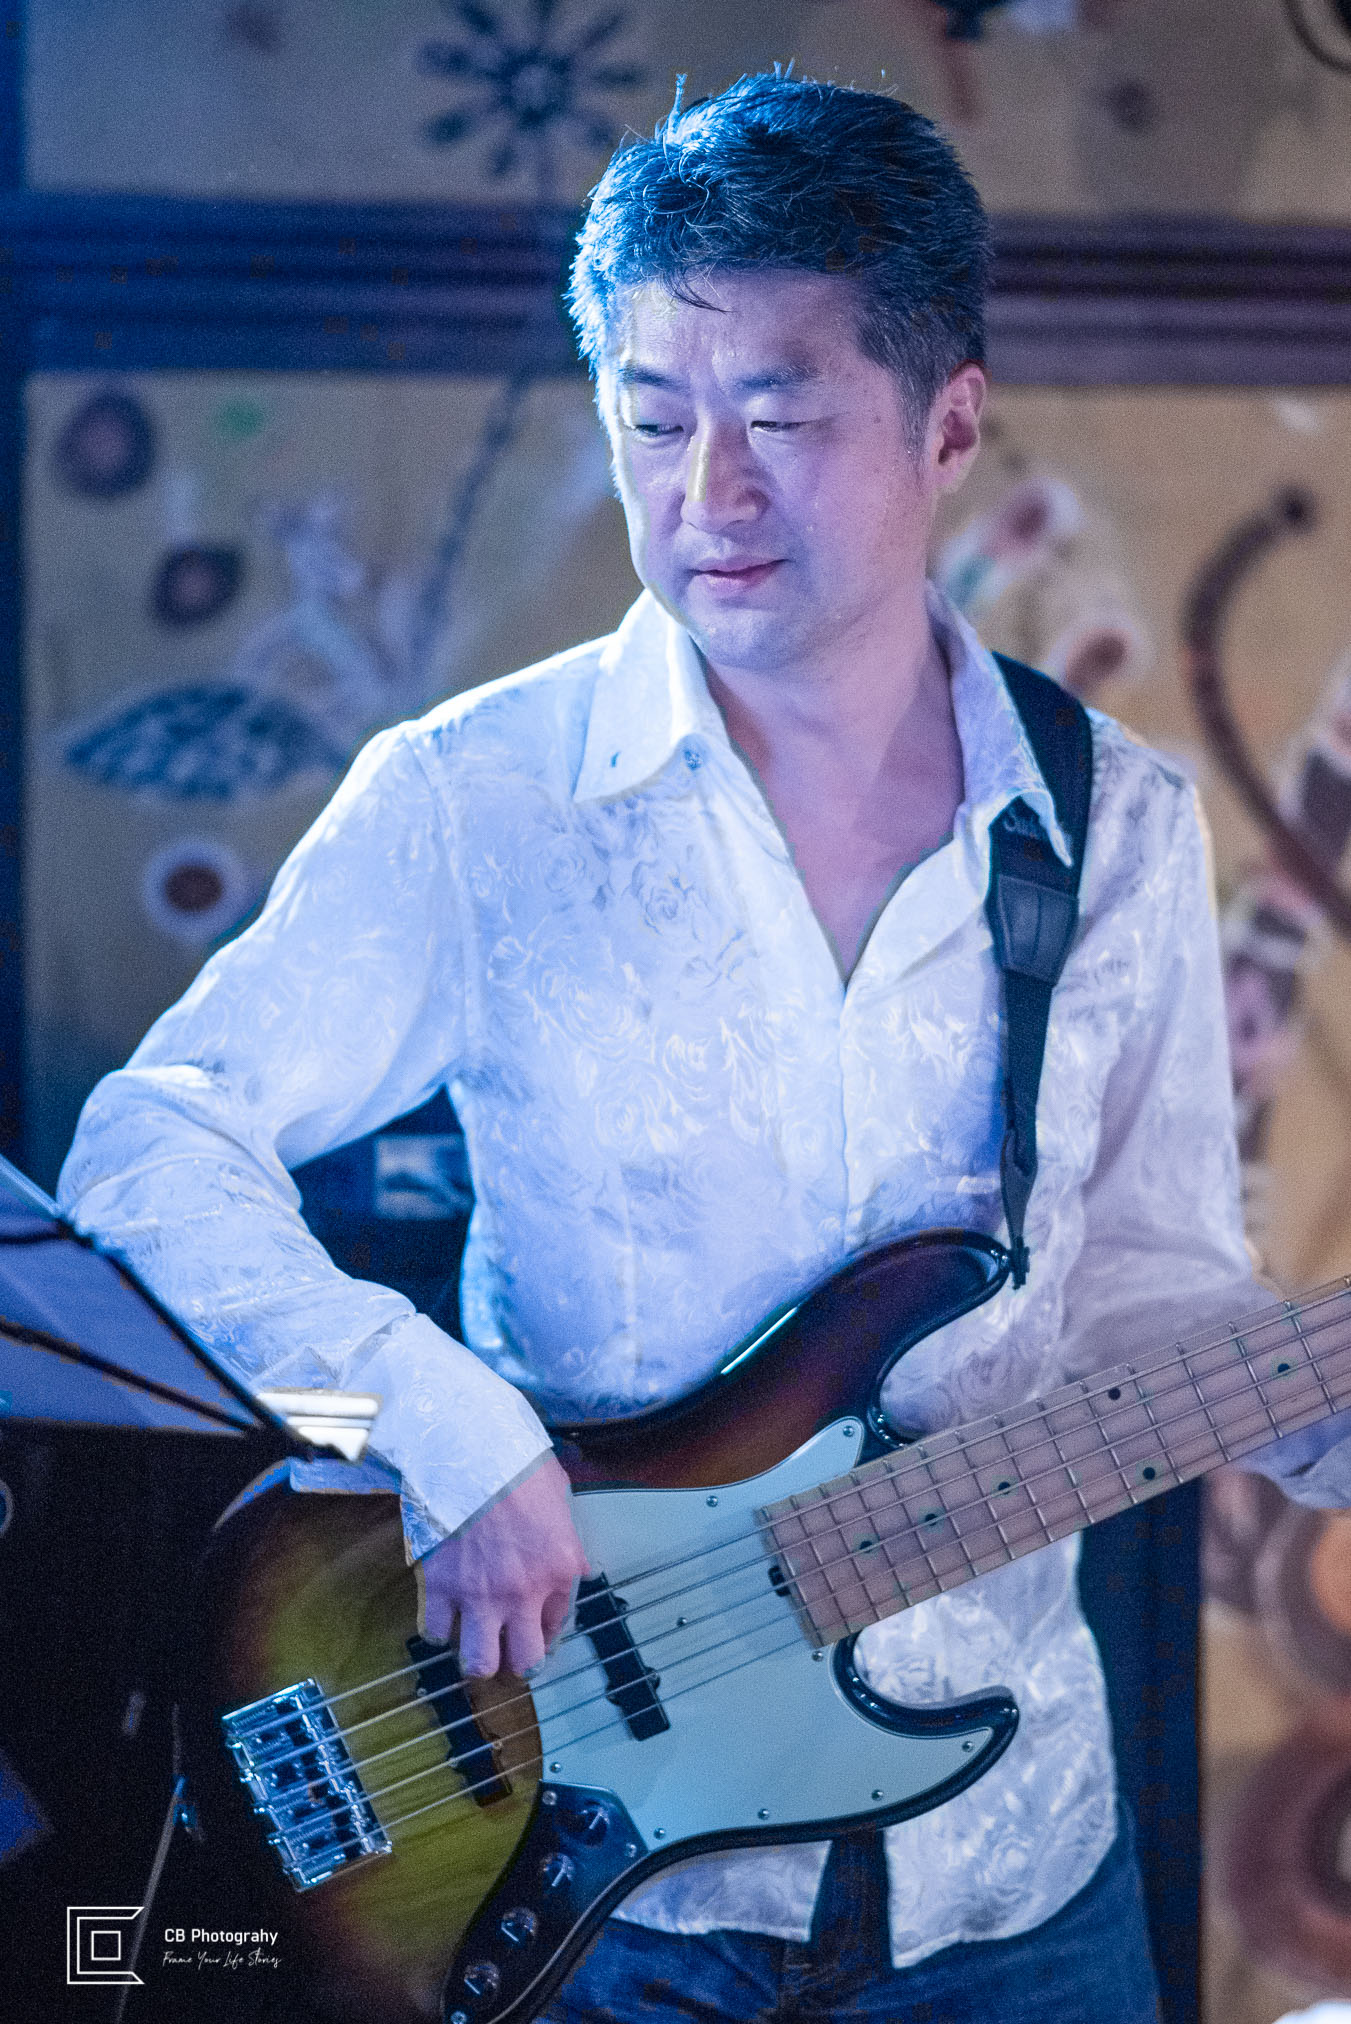 Bass playing during Catherine Forte music show